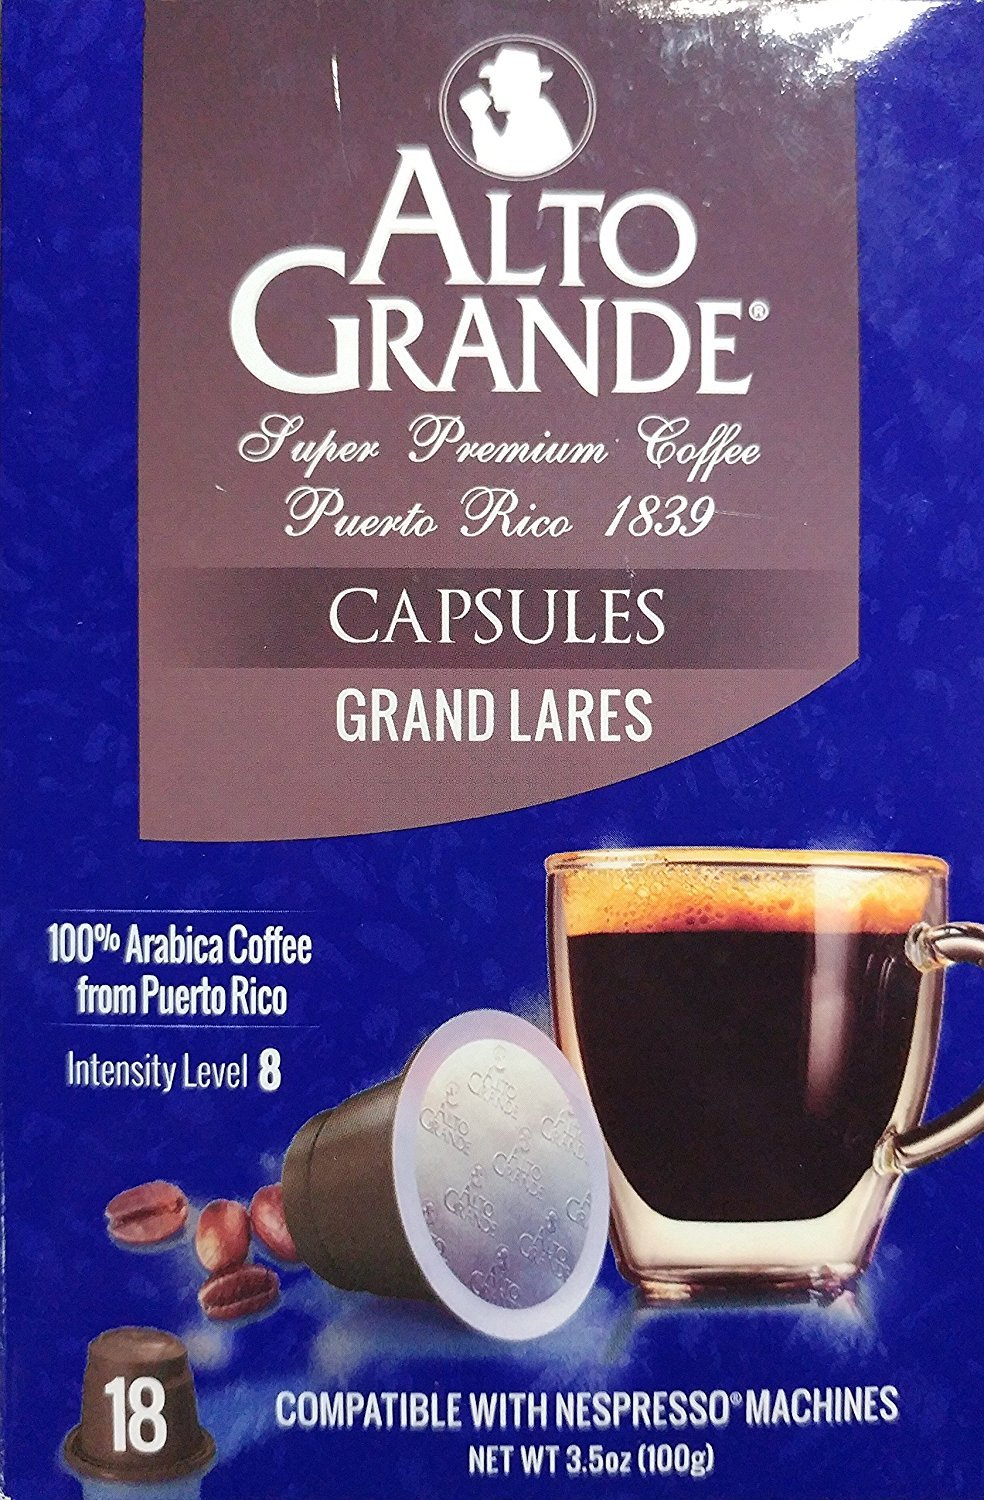 Alto Grande Grand Lares Coffee Capsules for Nespresso Machine (1 Box of 18 Capsules)